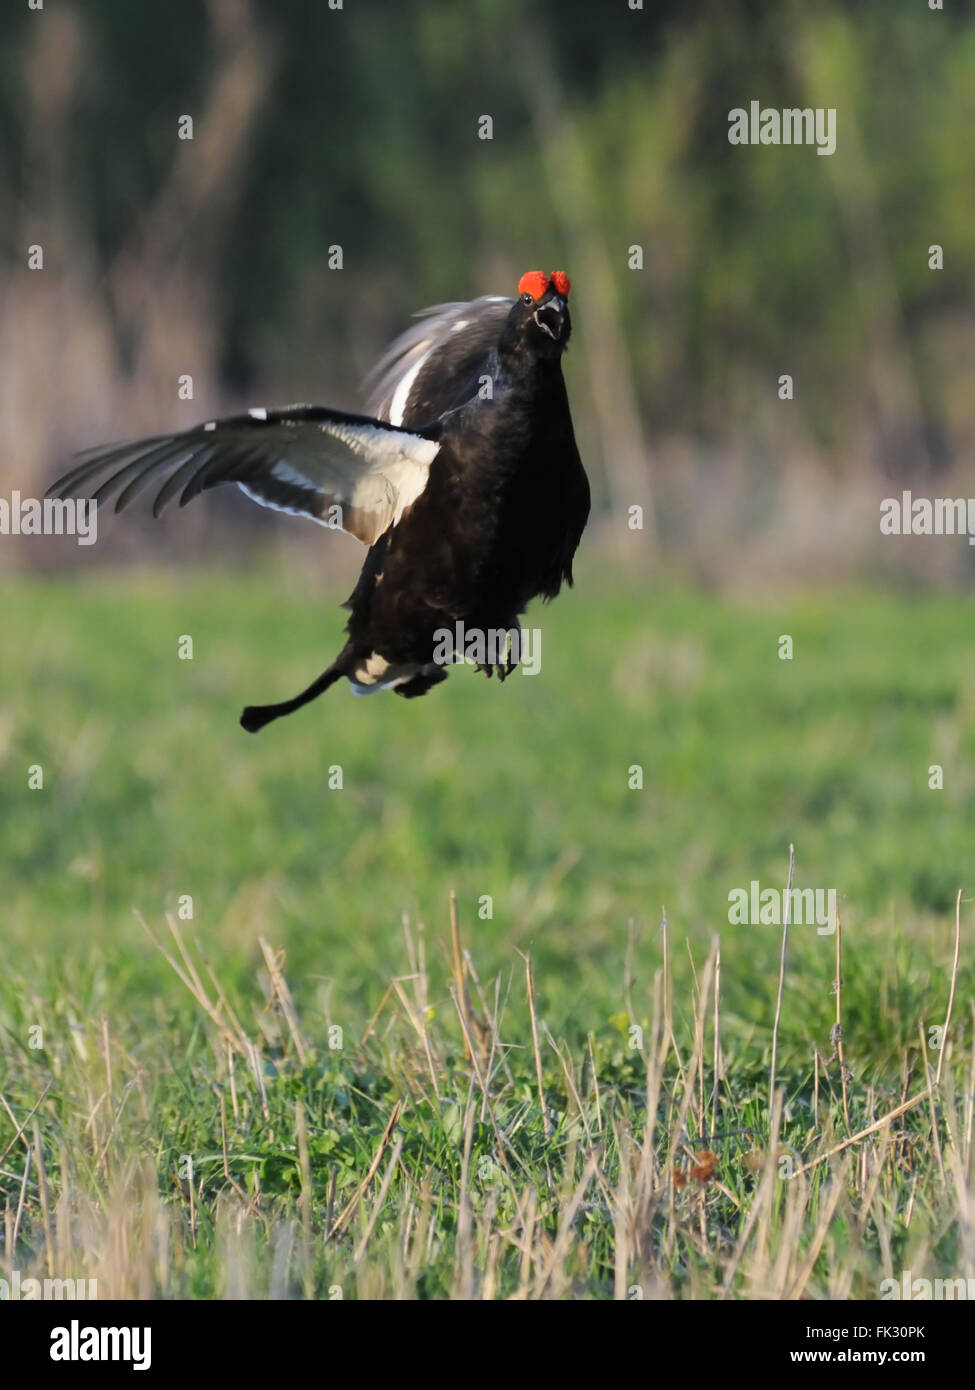 Courtship display of male Black grouse (Tetrao tetrix) early morning. Moscow region, Russia - Stock Image